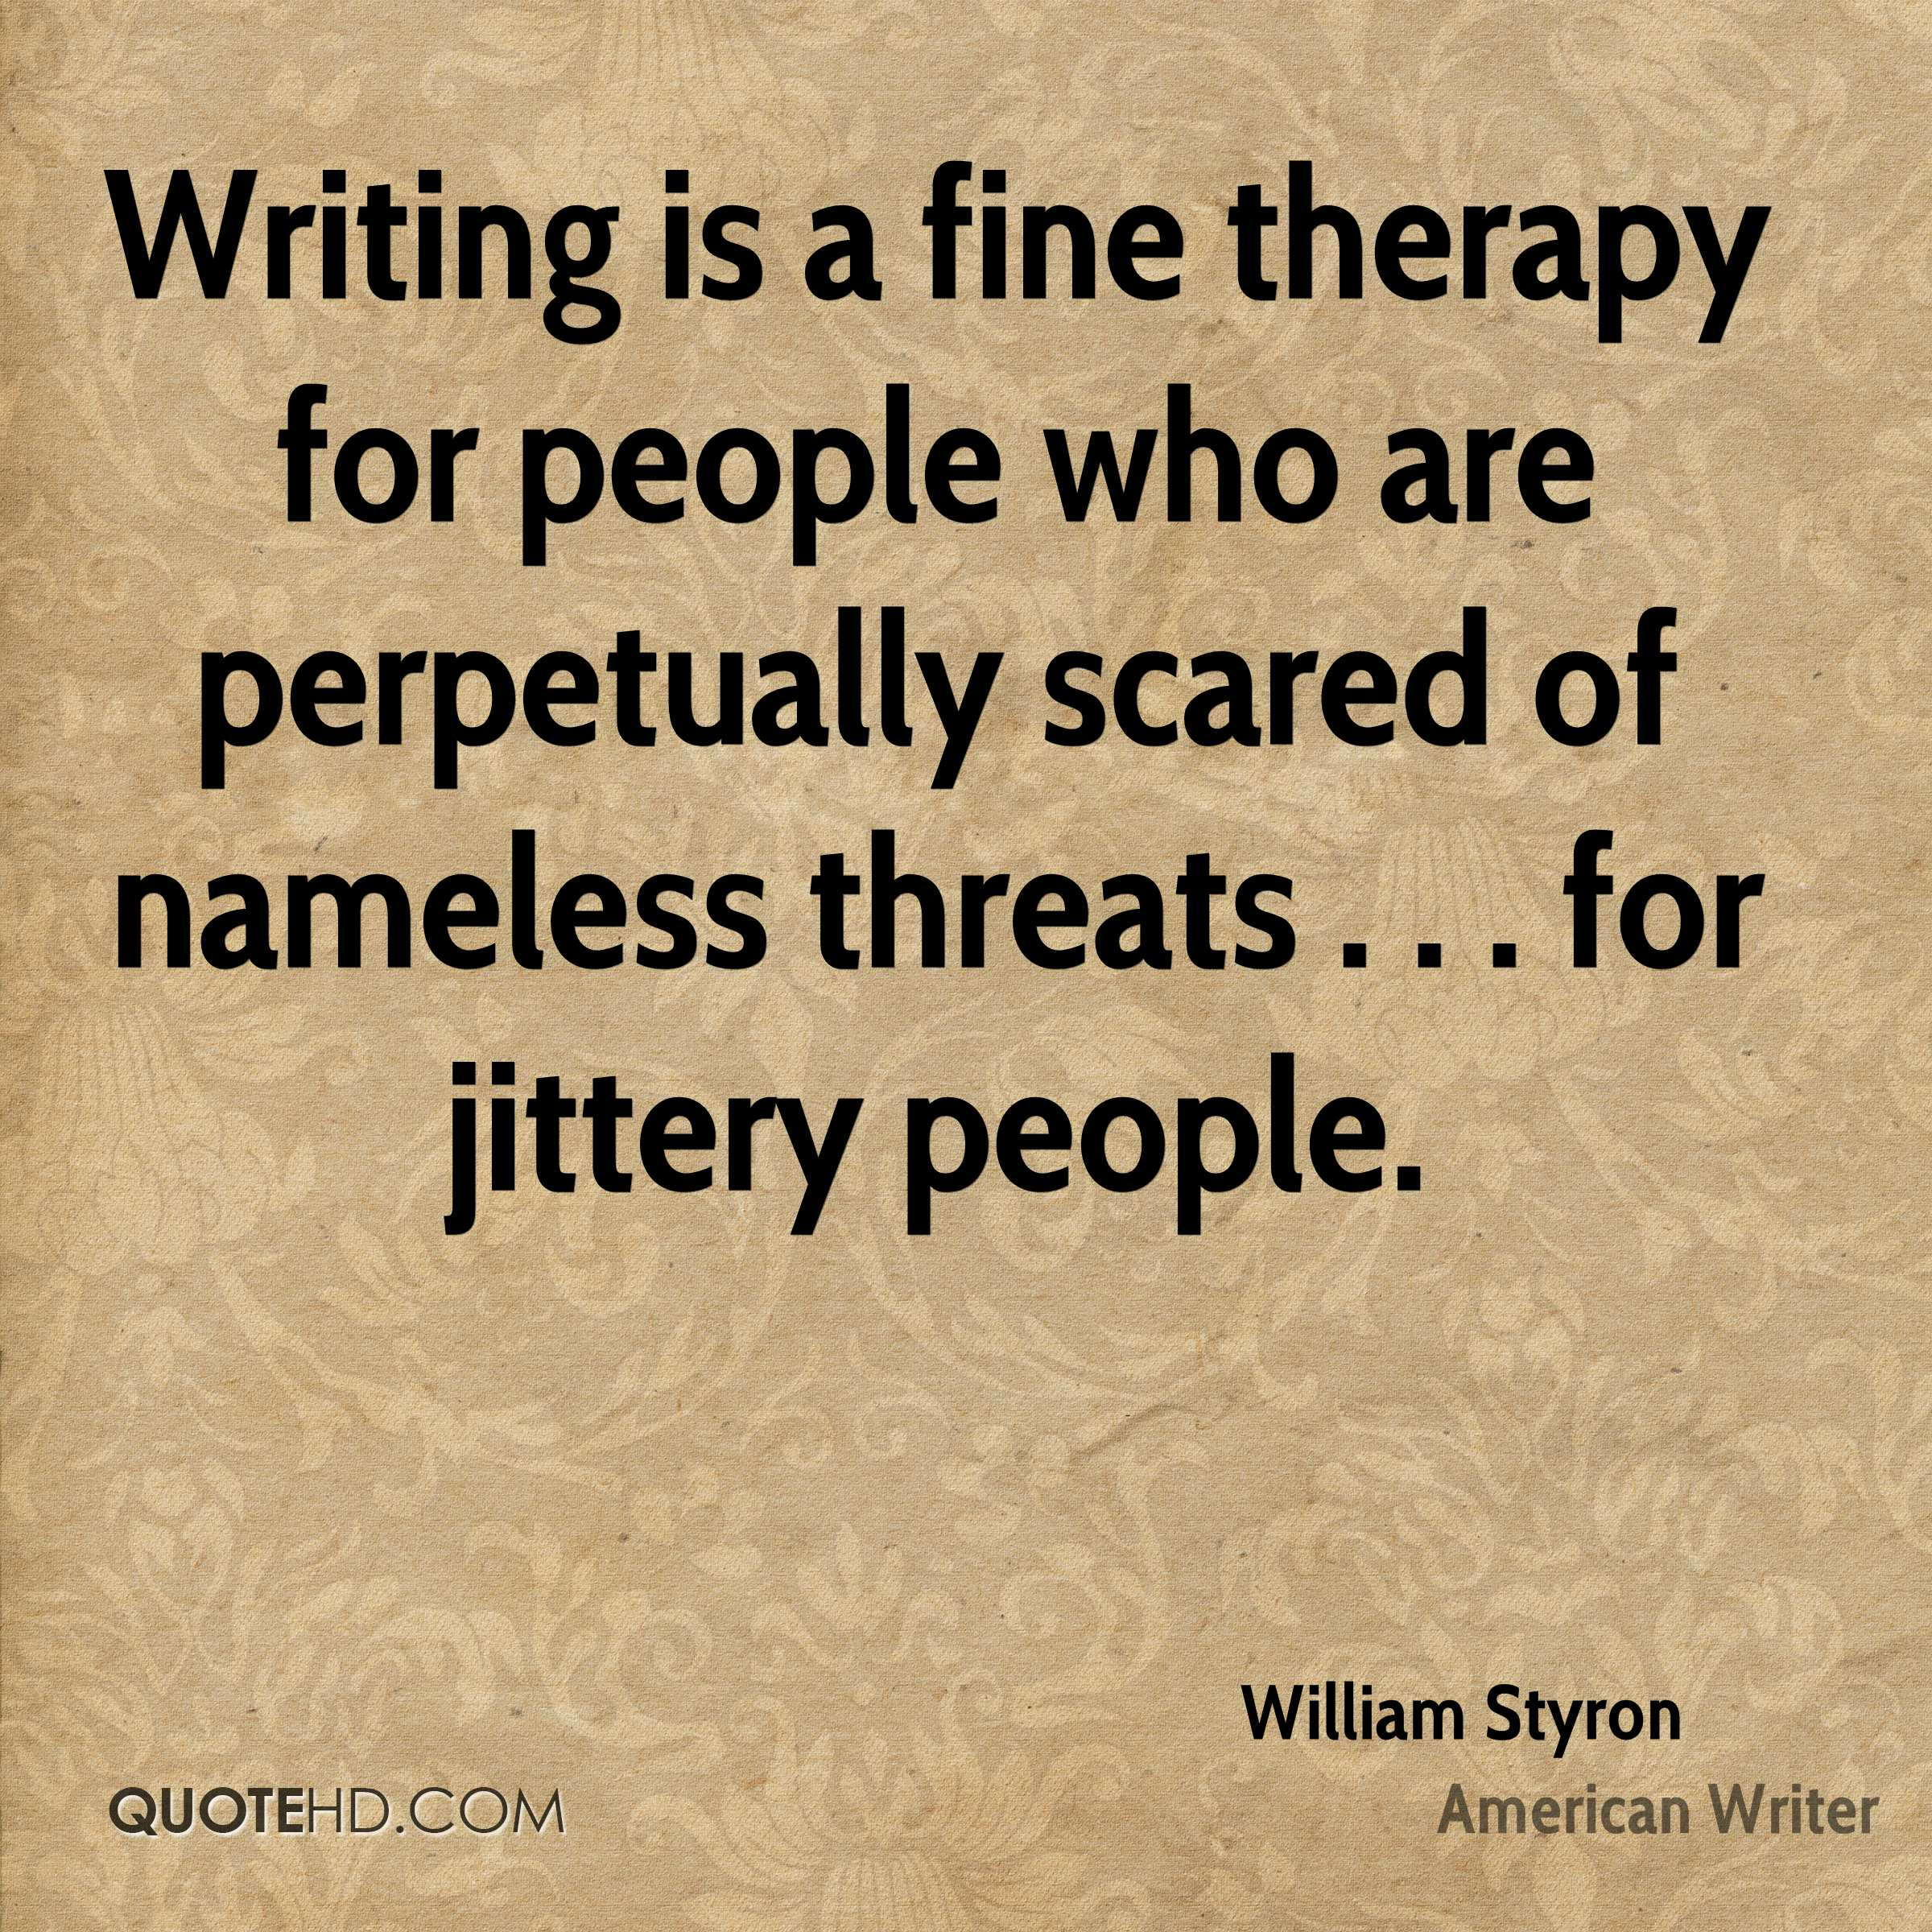 Writing is a fine therapy for people who are perpetually scared of nameless threats . . . for jittery people.